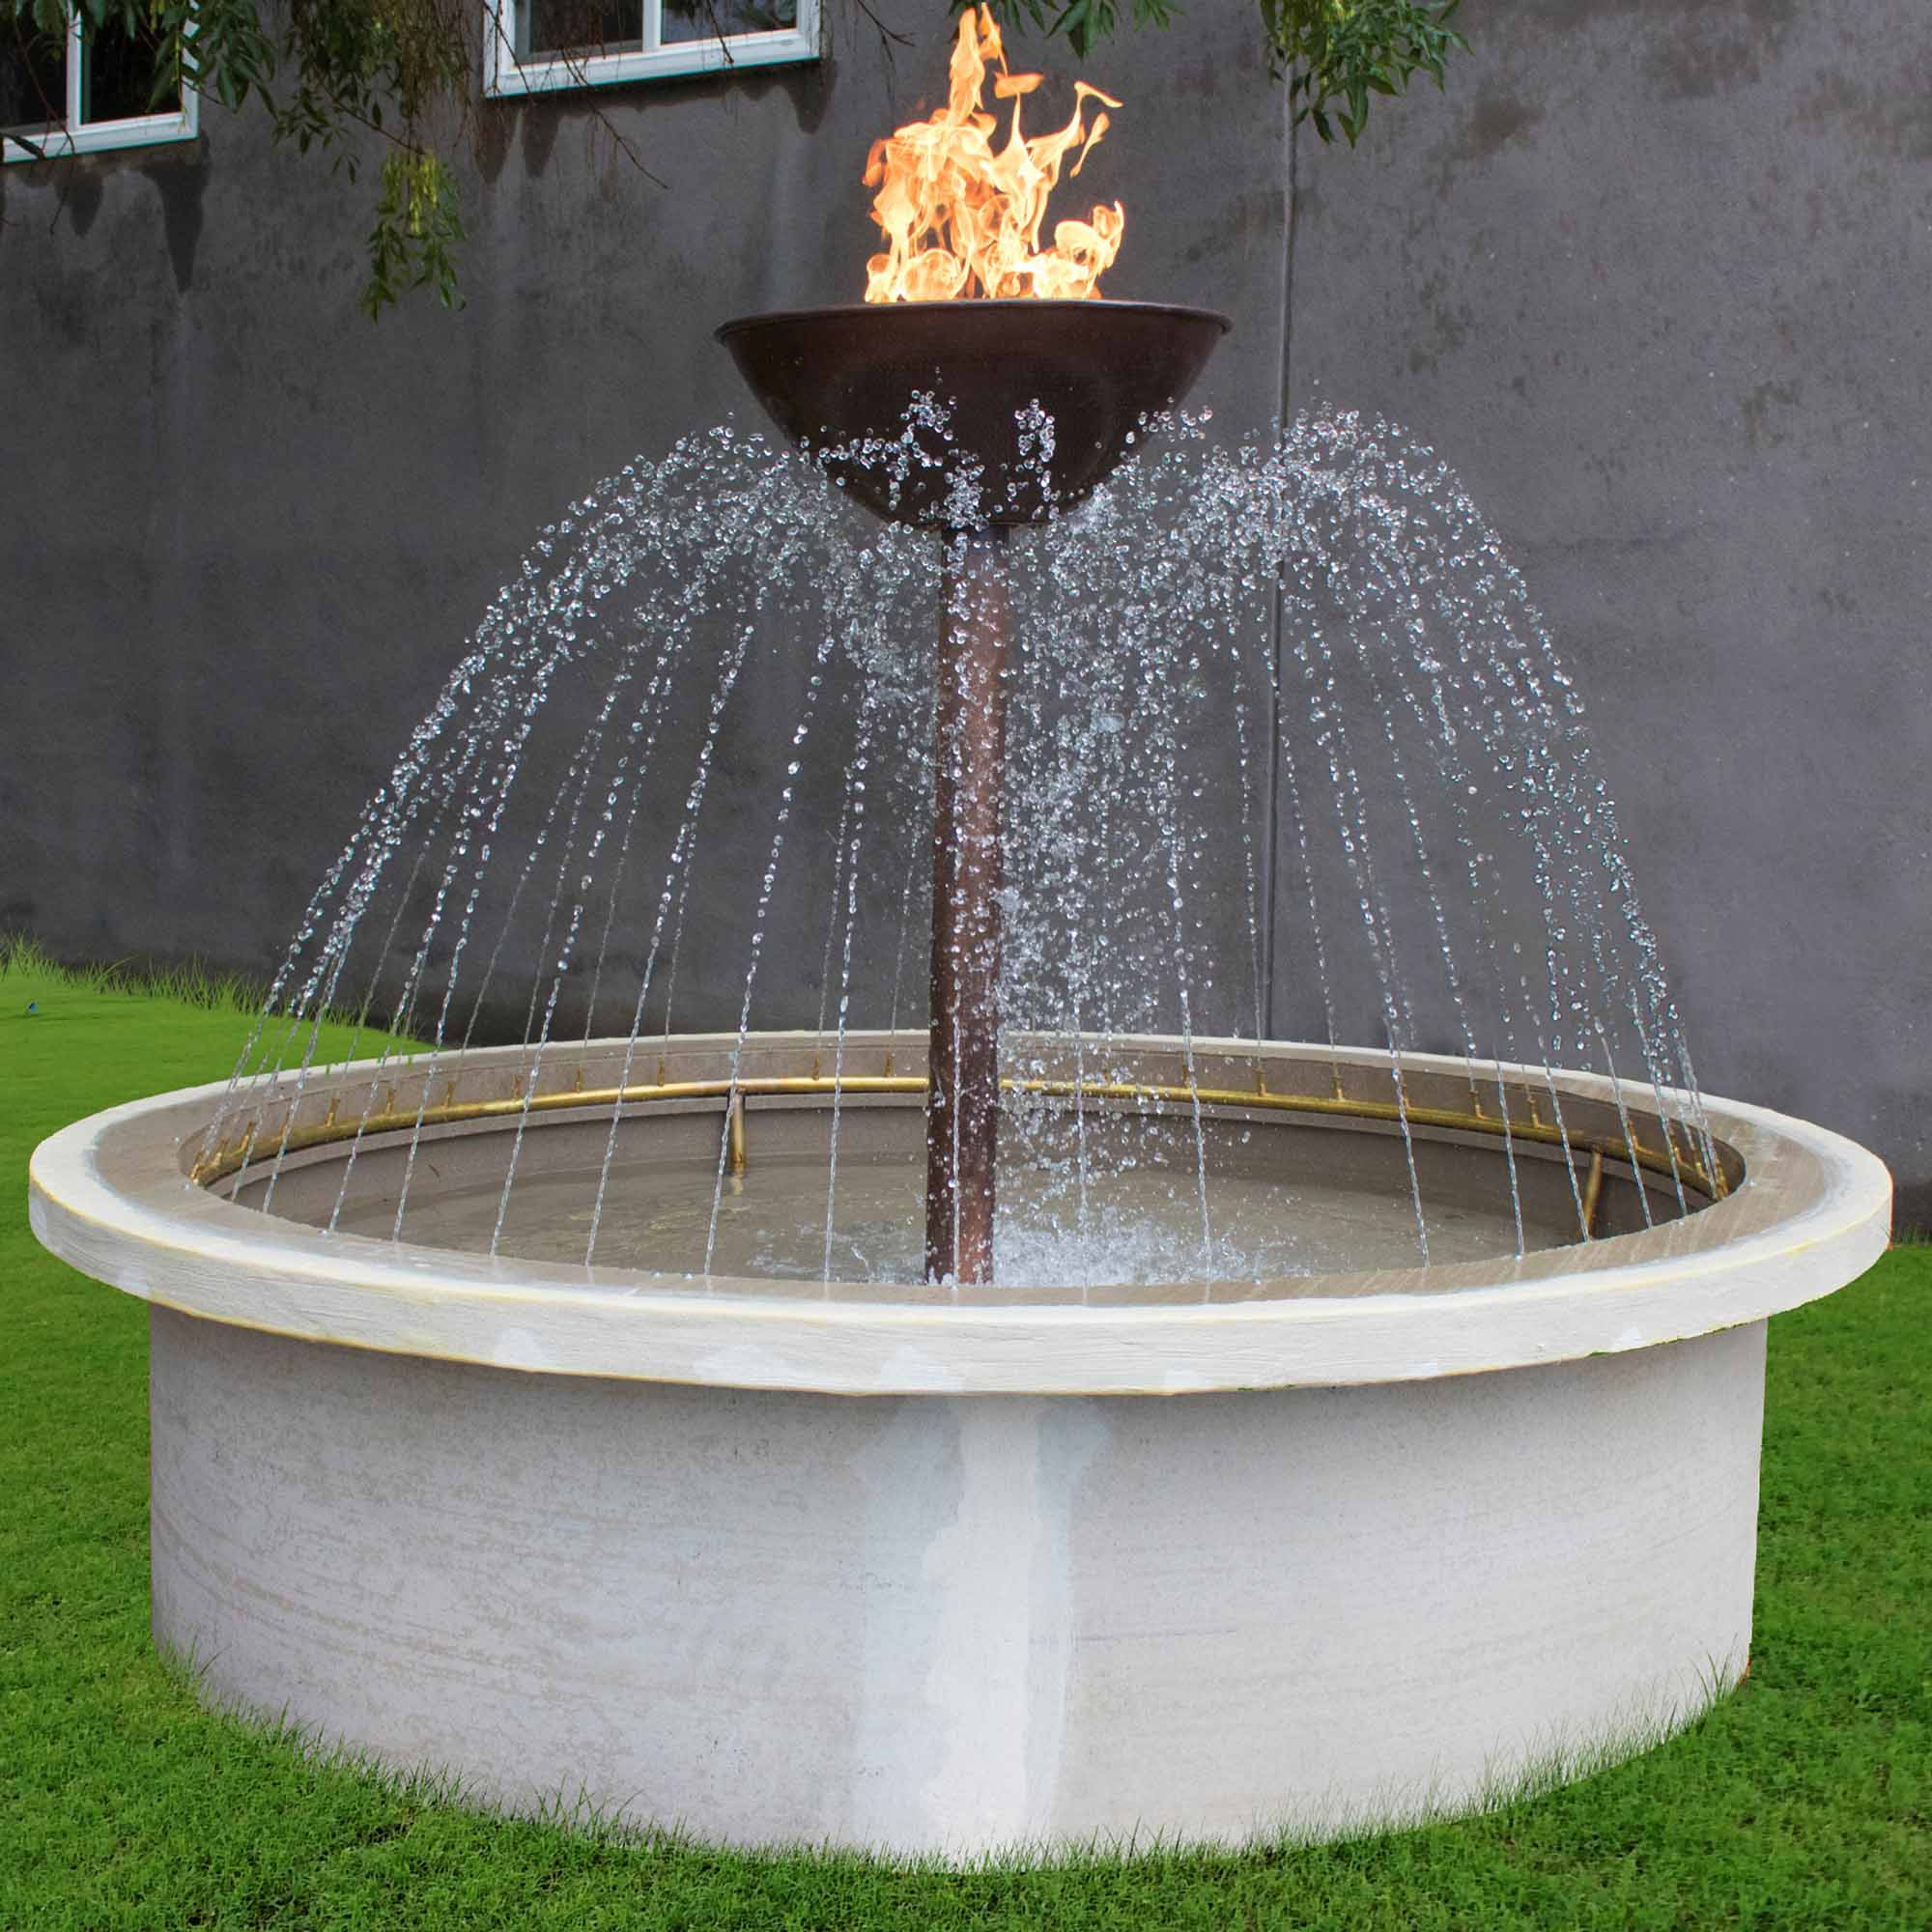 Osiris Self-Contained Fire Water Feature